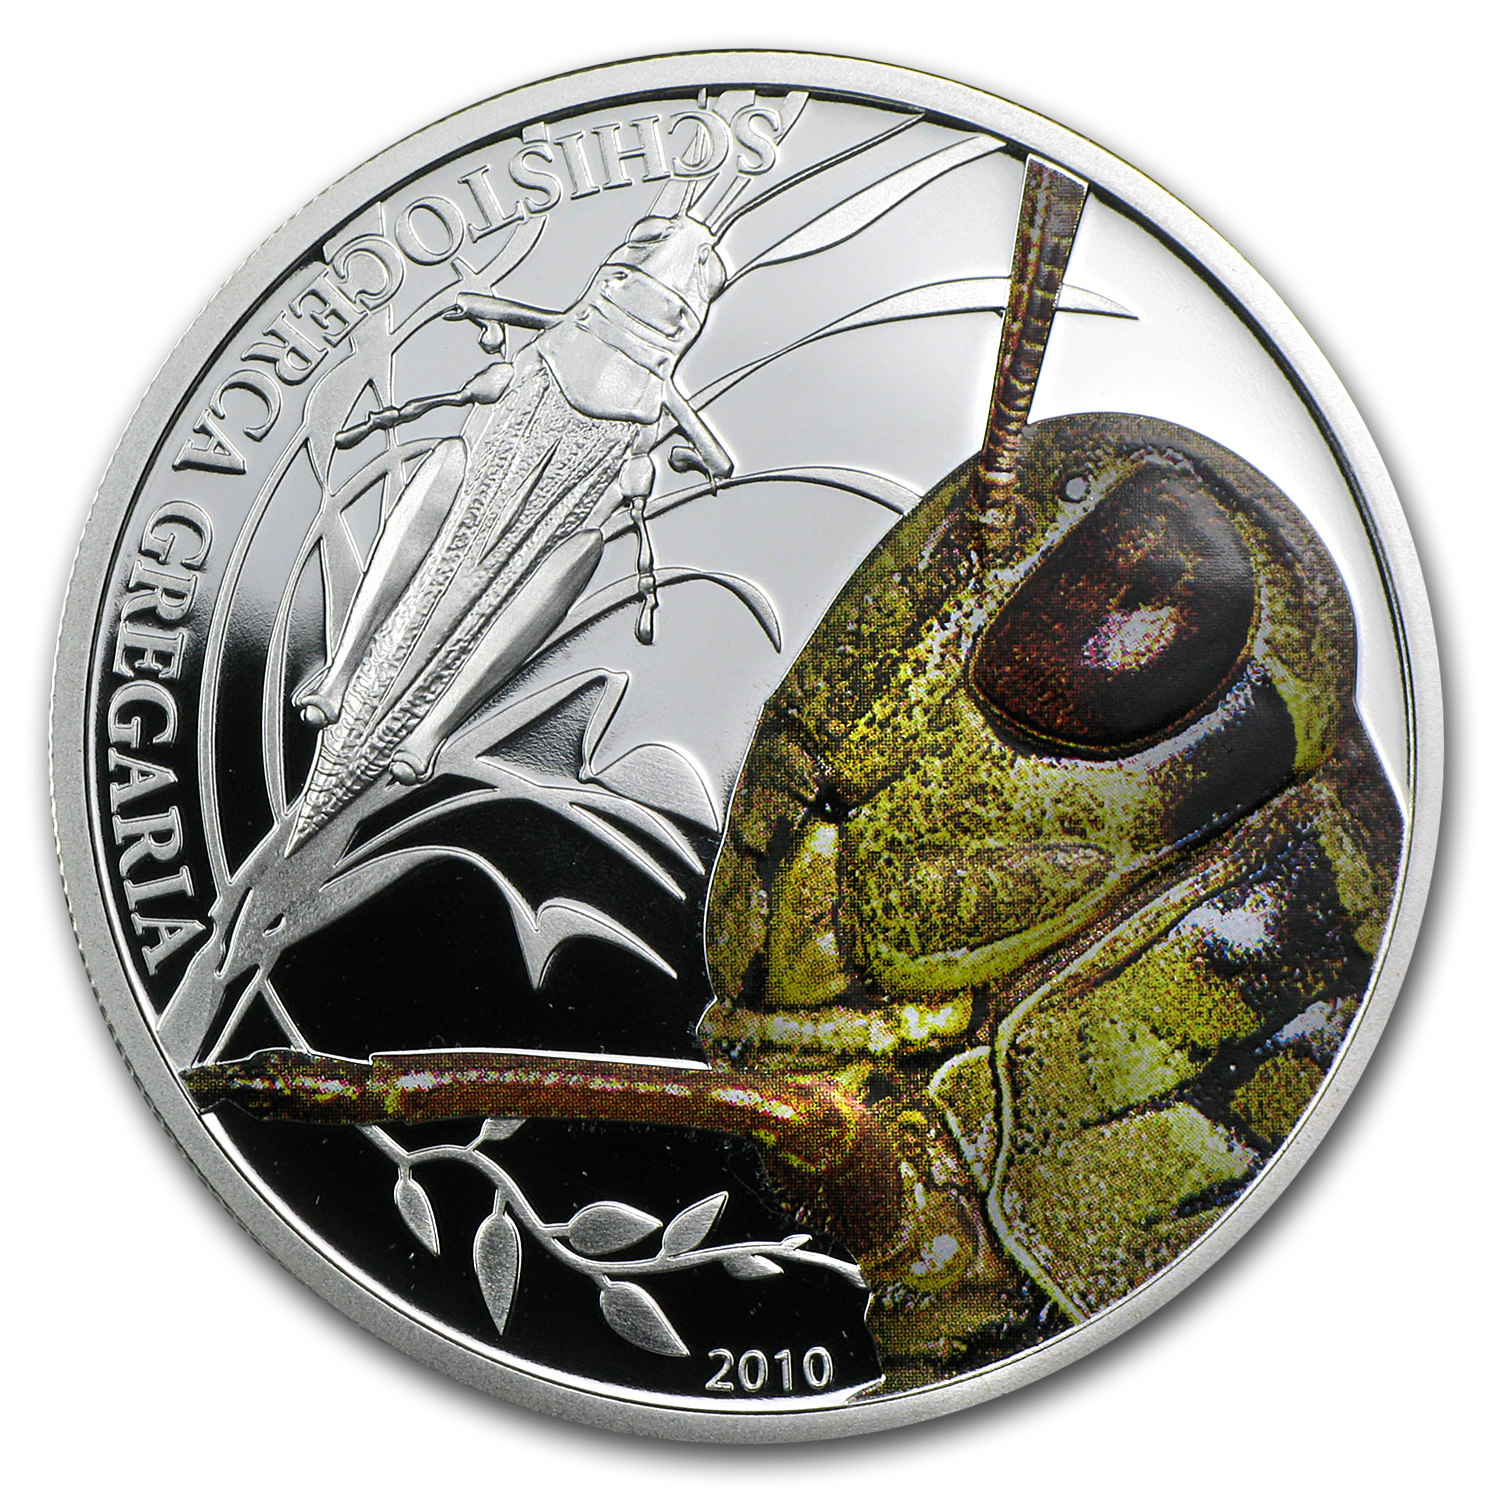 2010 Palau Proof Silver $2 World of Insects Grasshopper